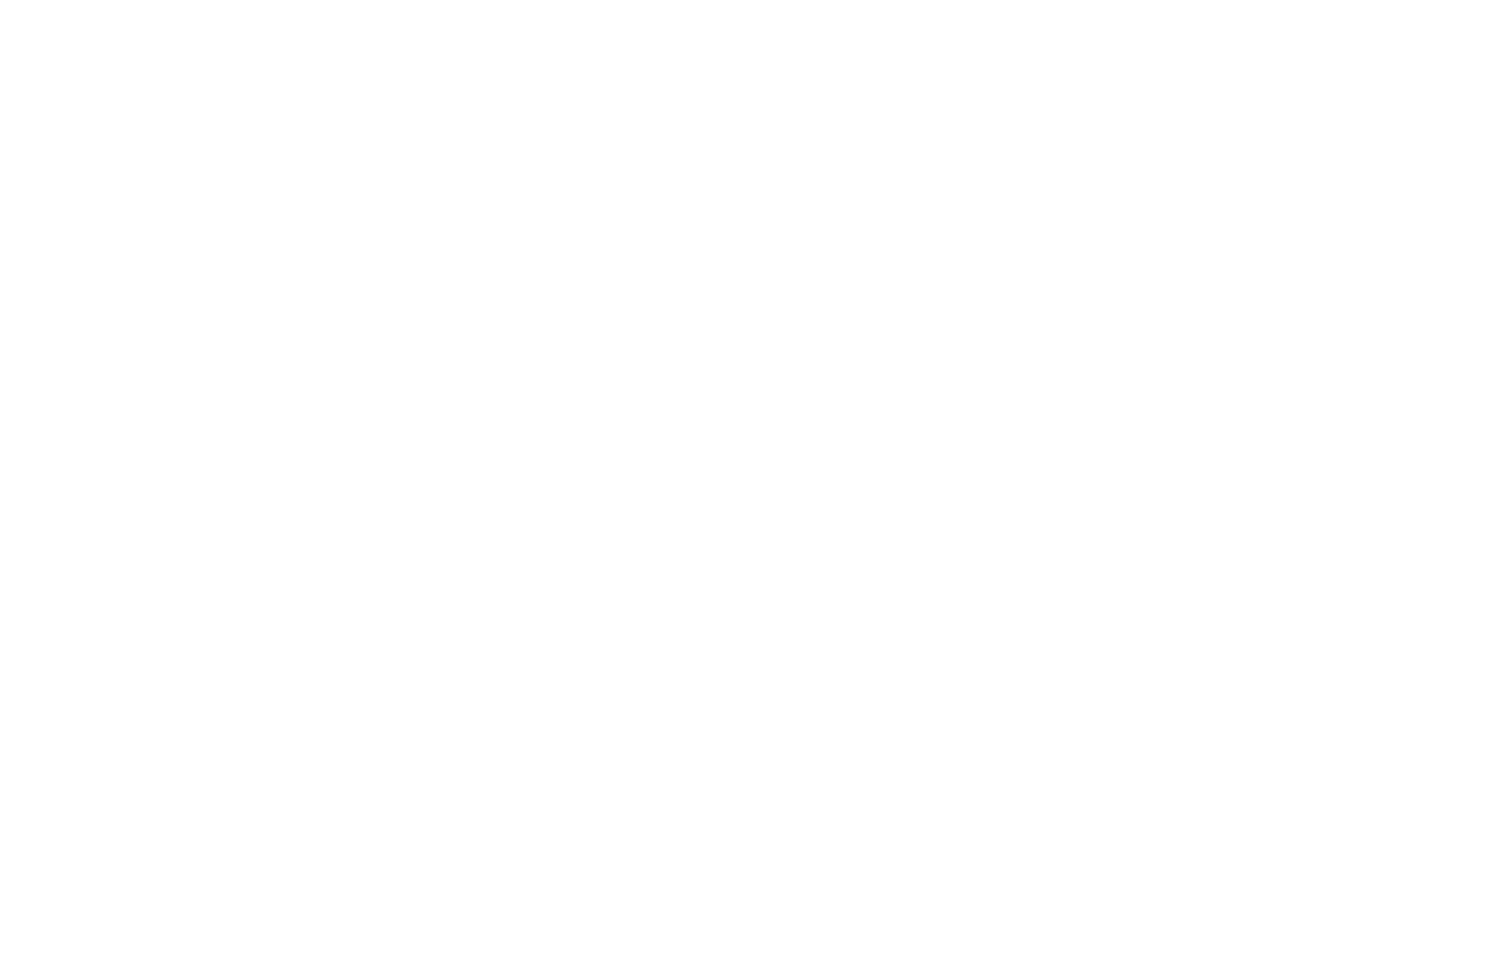 Twin Flames Heart's Desire